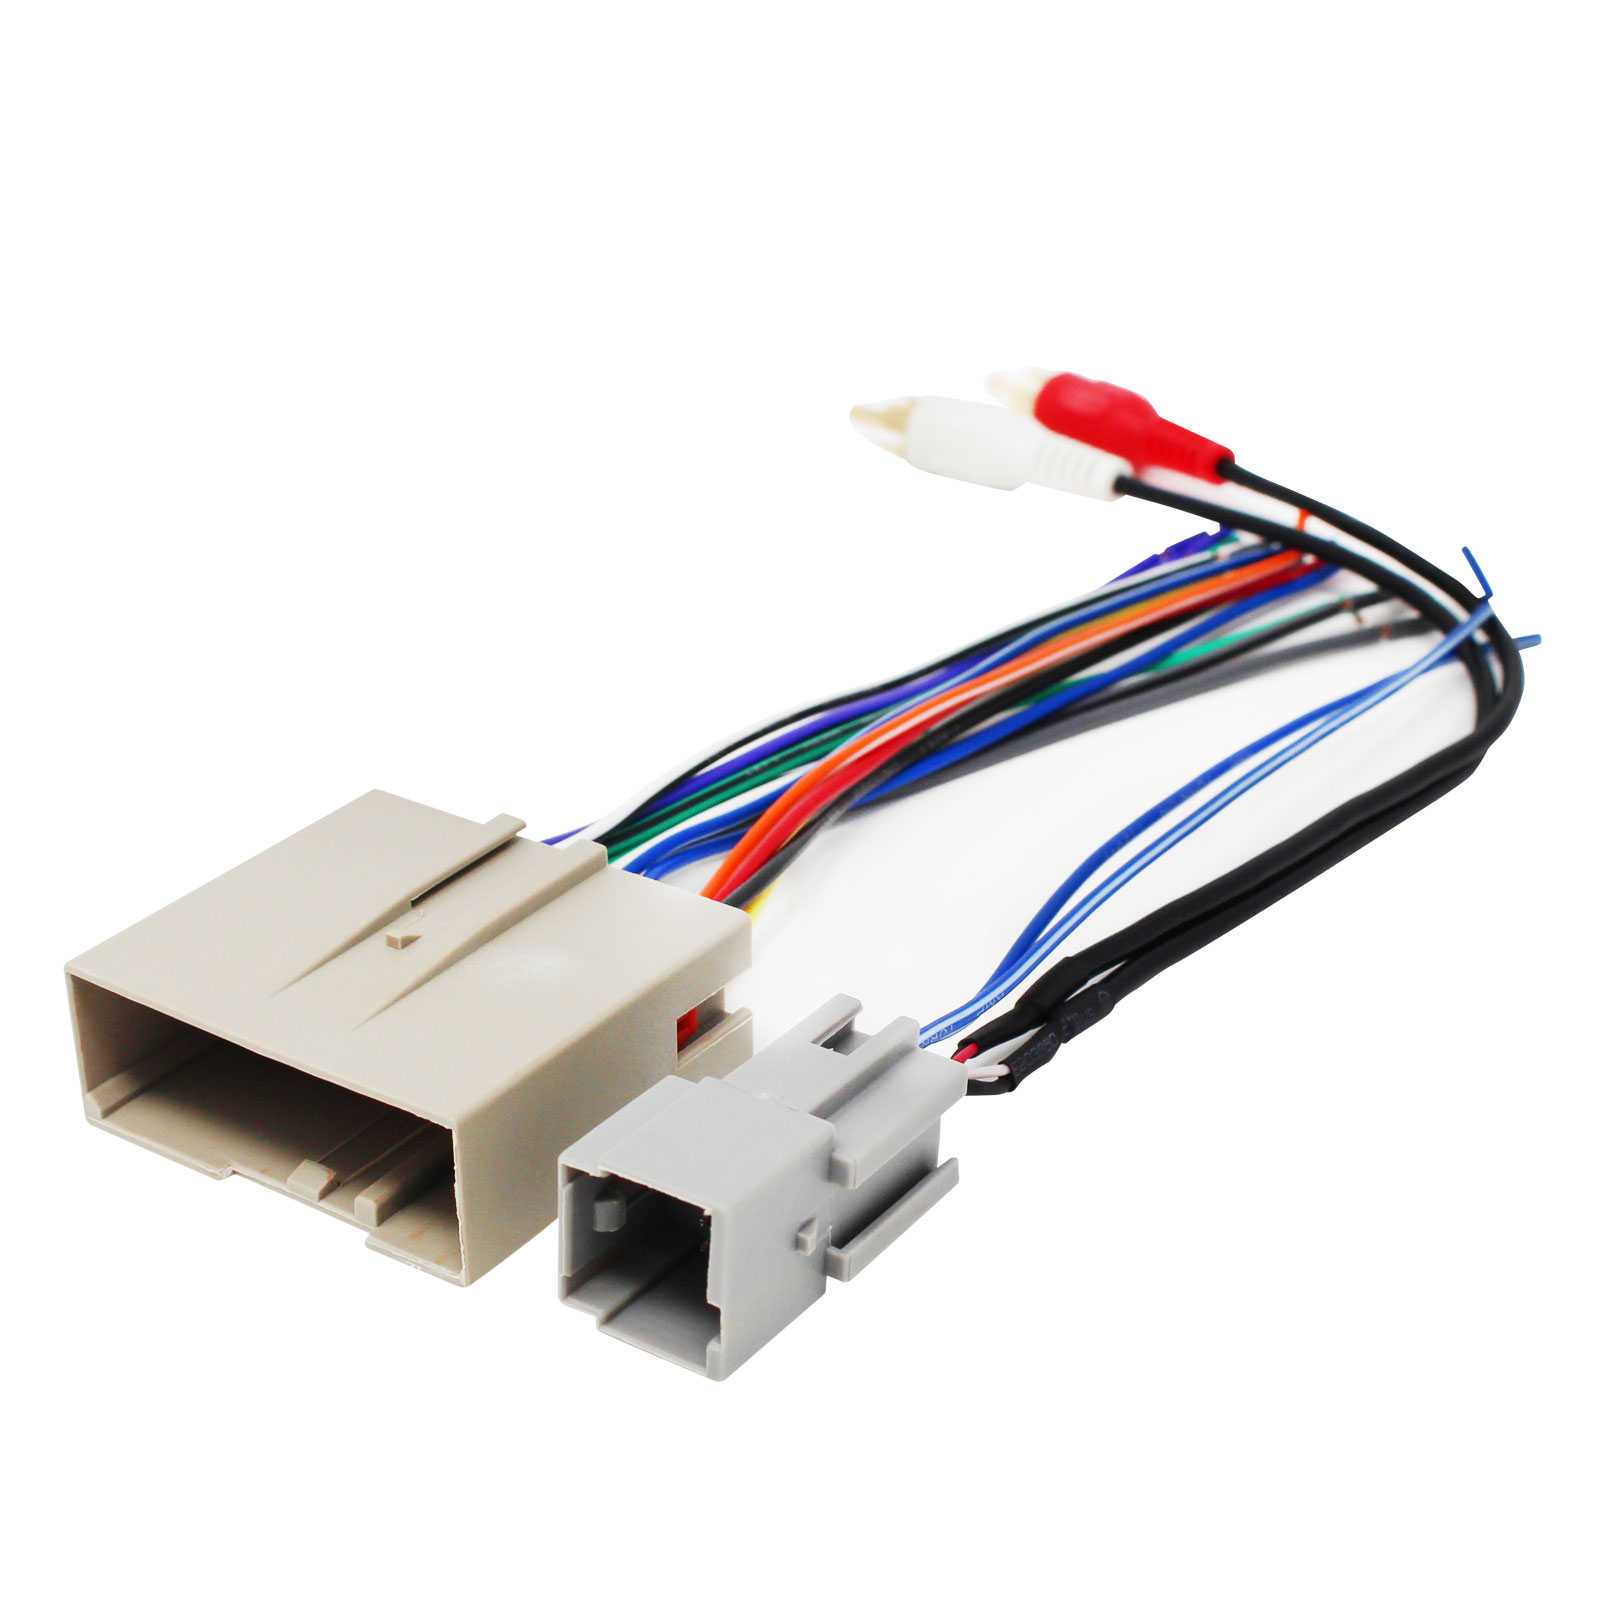 2005 Super Duty Radio Wiring Books Of Diagram Ford Replacement Harness For F 250 Xl Rh Walmart Com F250